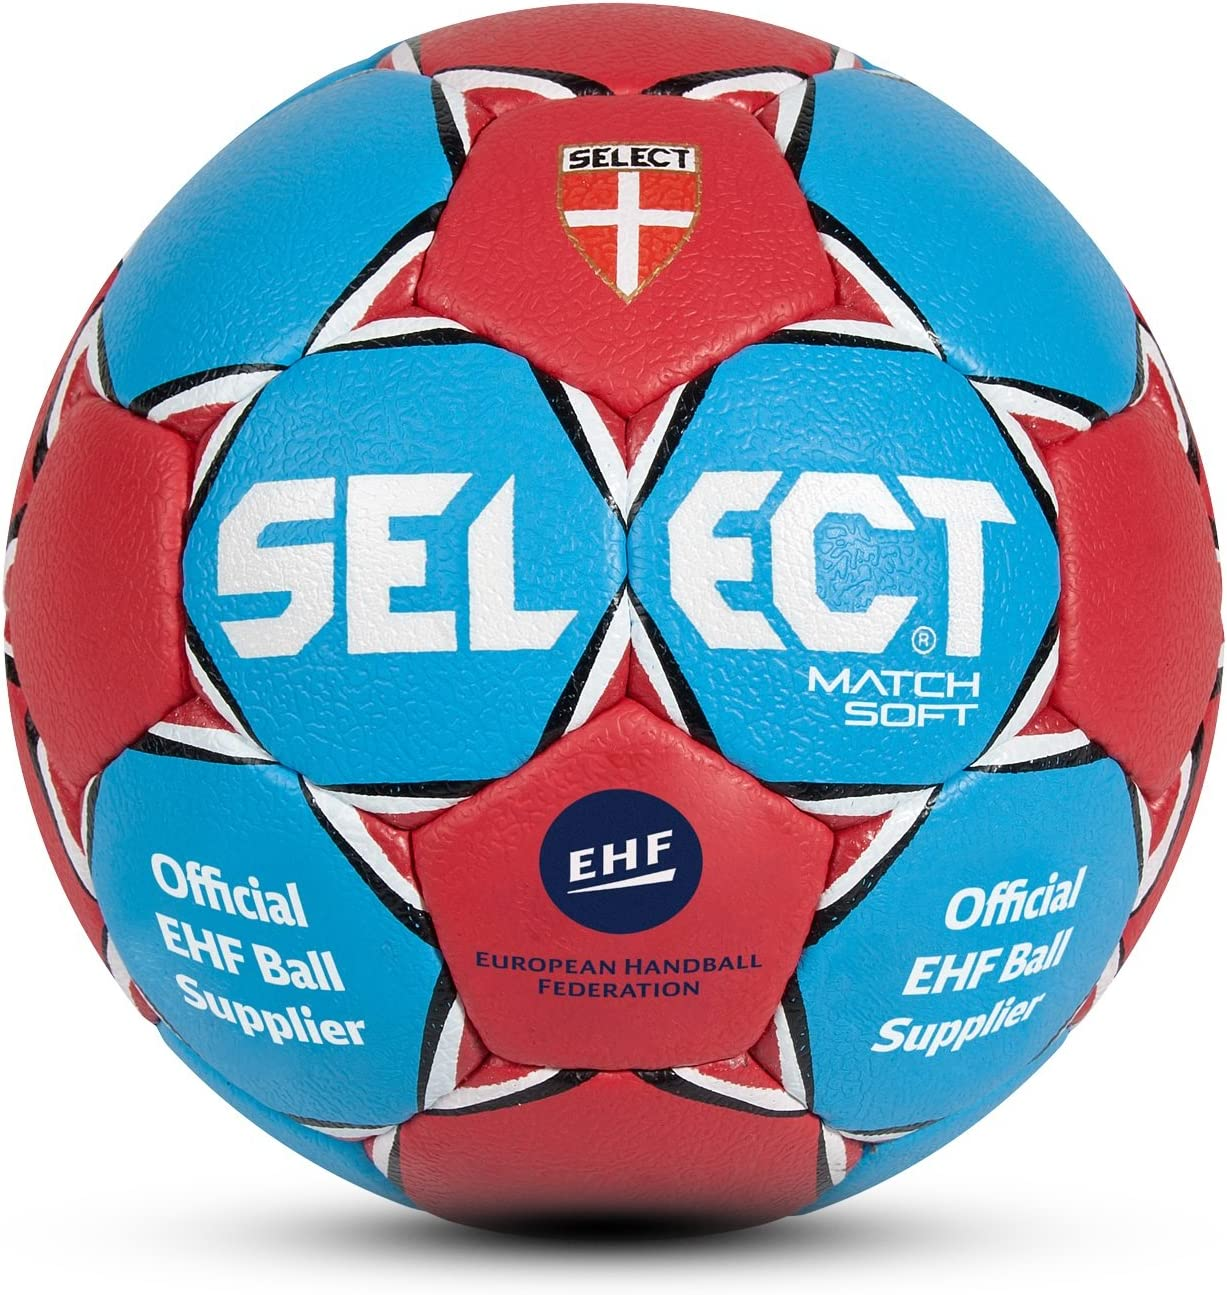 Select Handball Match Soft - Balón de Balonmano Suave, Color Gris ...